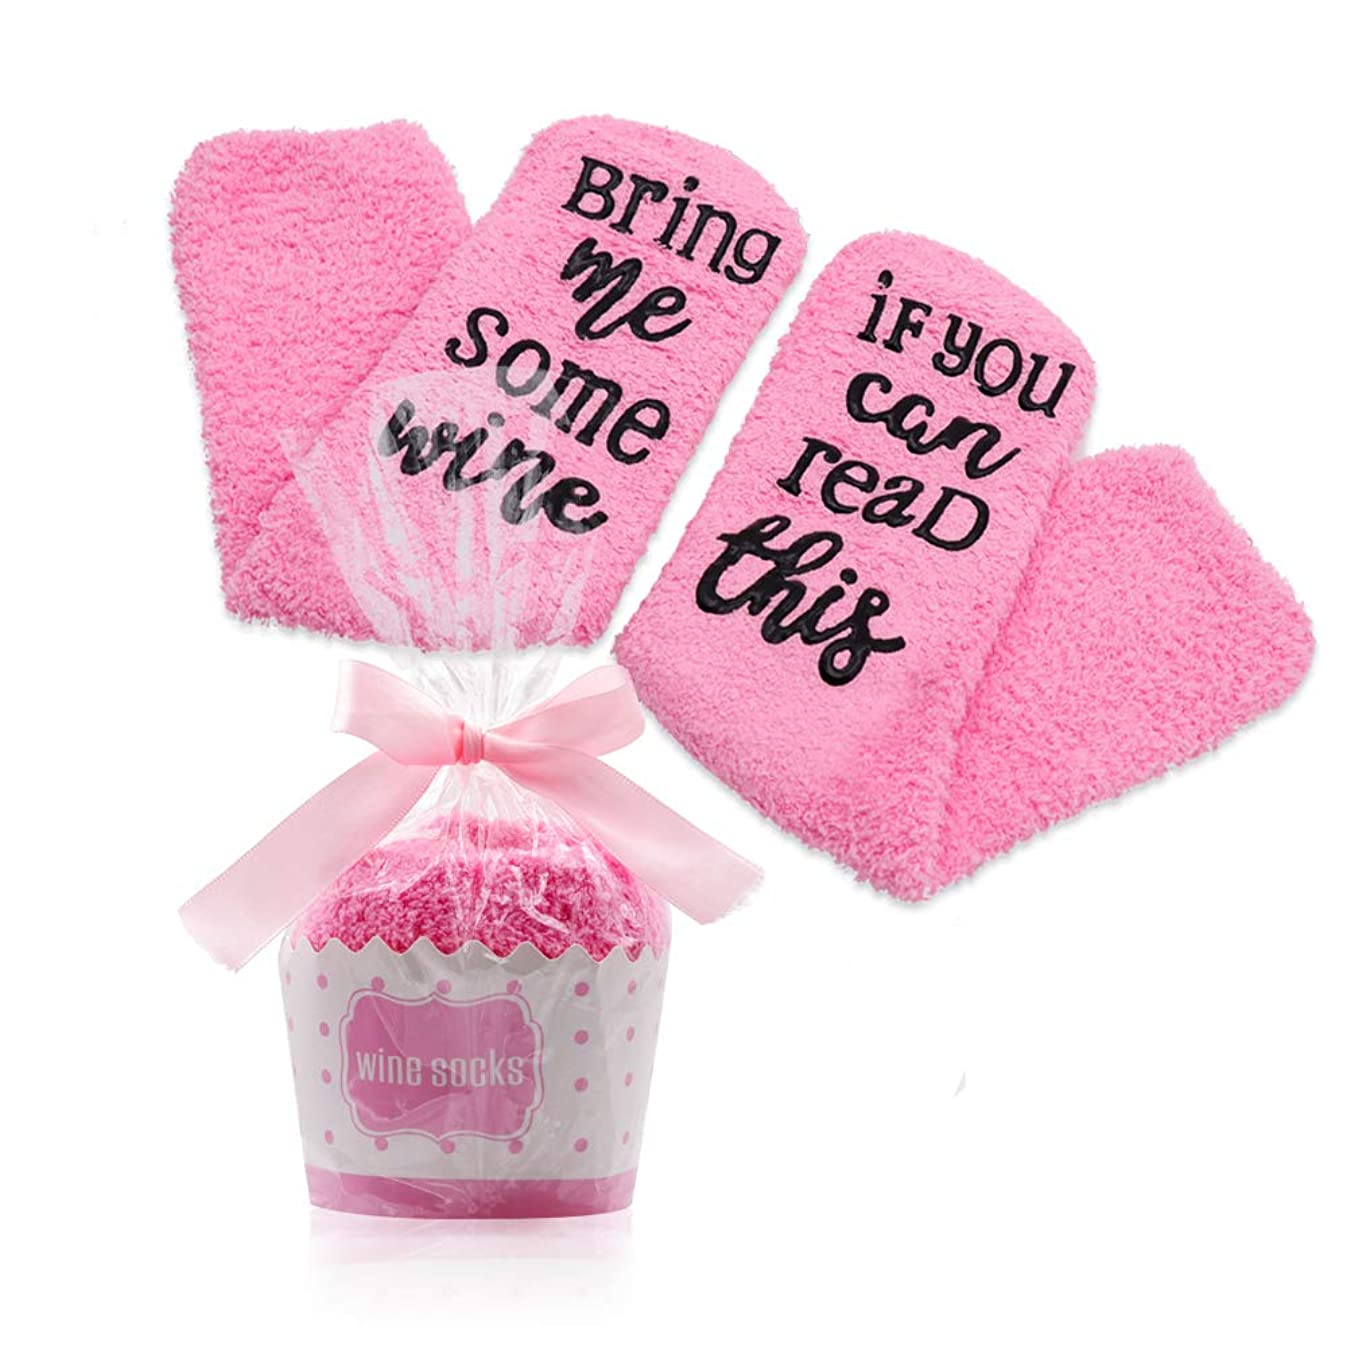 Nurkeen Wine Socks, Unique Wine Slippers for Women Medium, Soft Wine Gifts for Woman, Gift Socks with Cupcake Gift Packaging, Wine Socks Women love them - If You Can Read This Bring Me Some Wine Socks